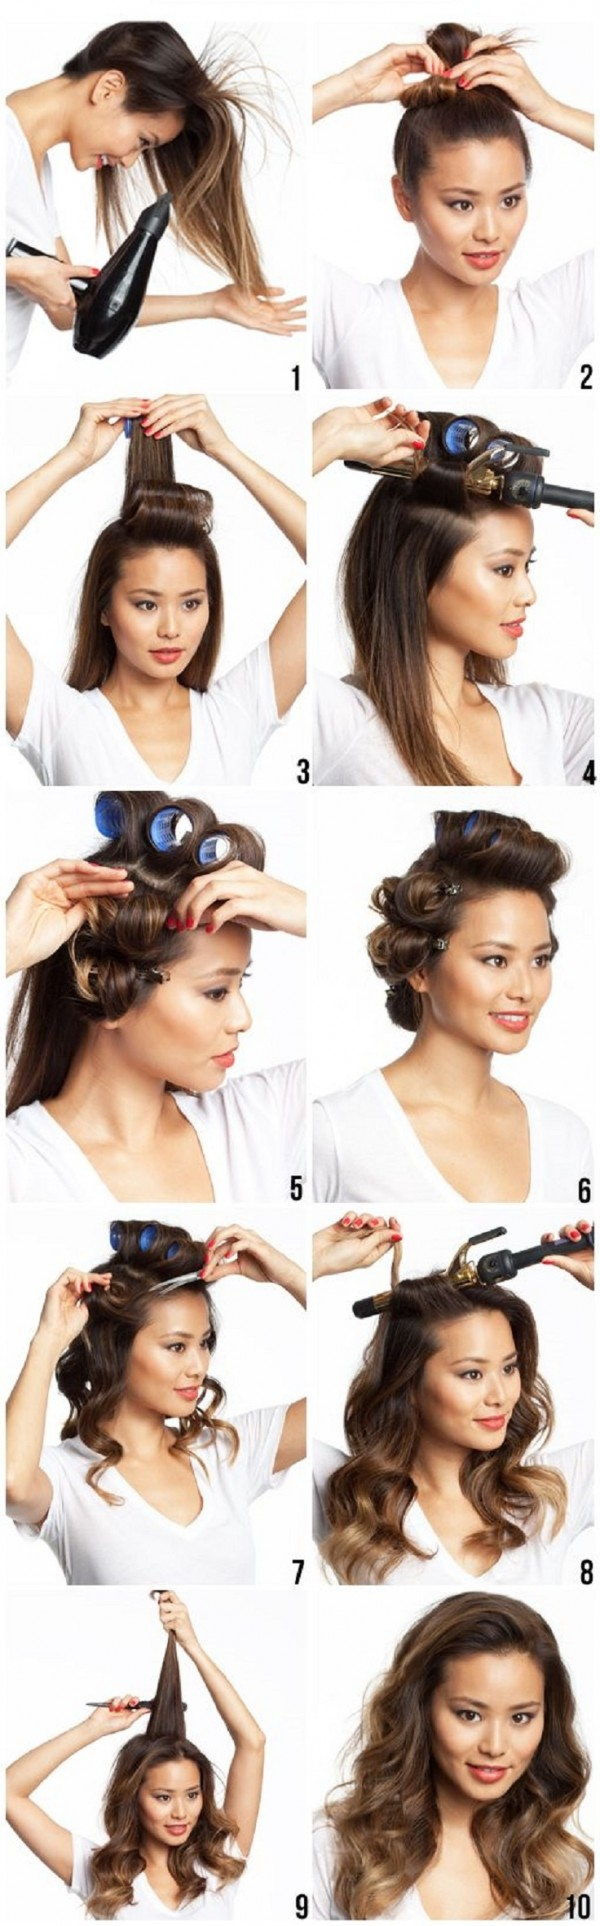 night club hairstyle6